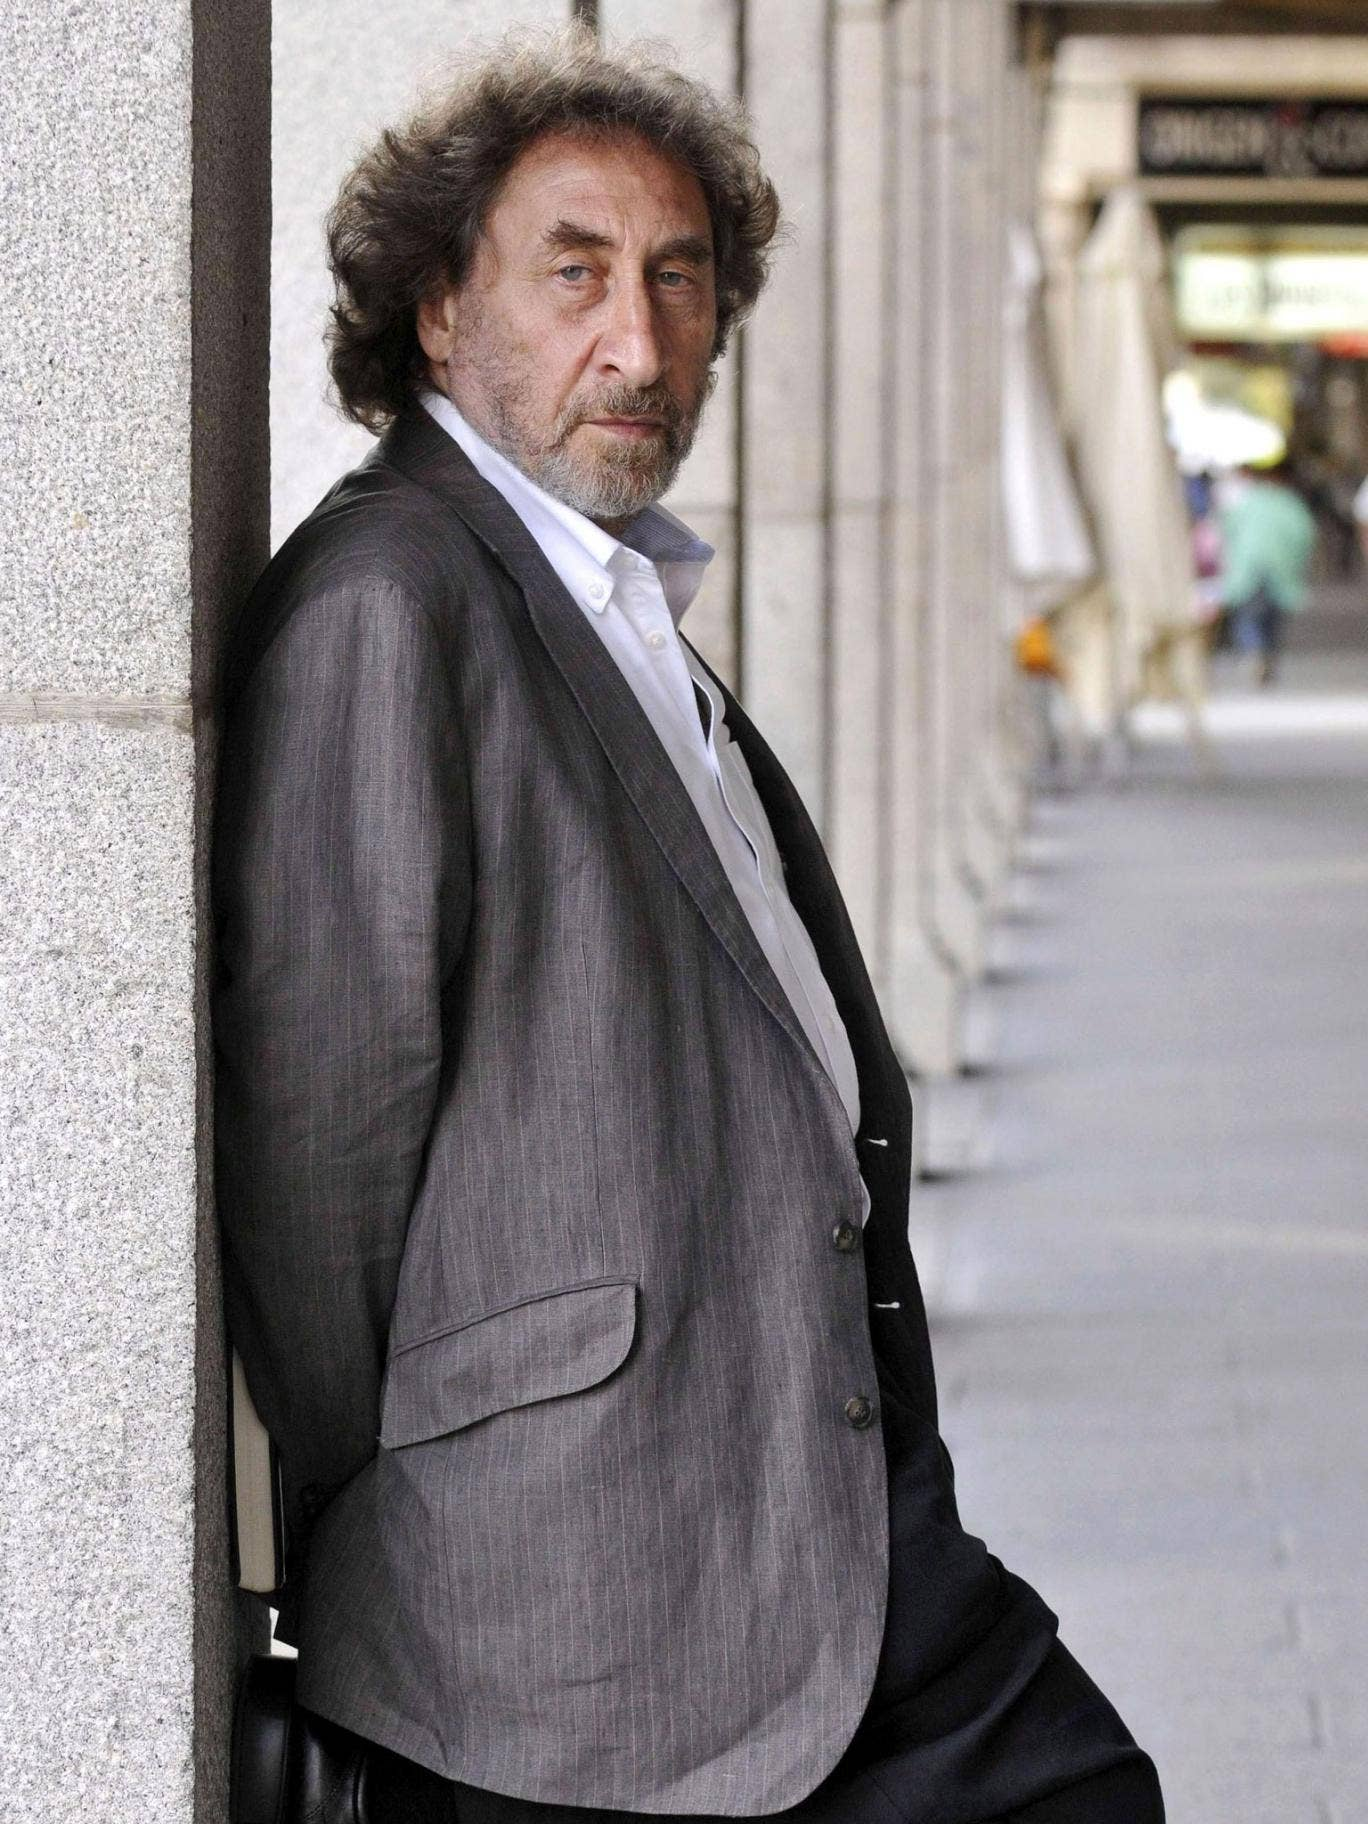 Howard Jacobson won the Man Booker Prize in 2010